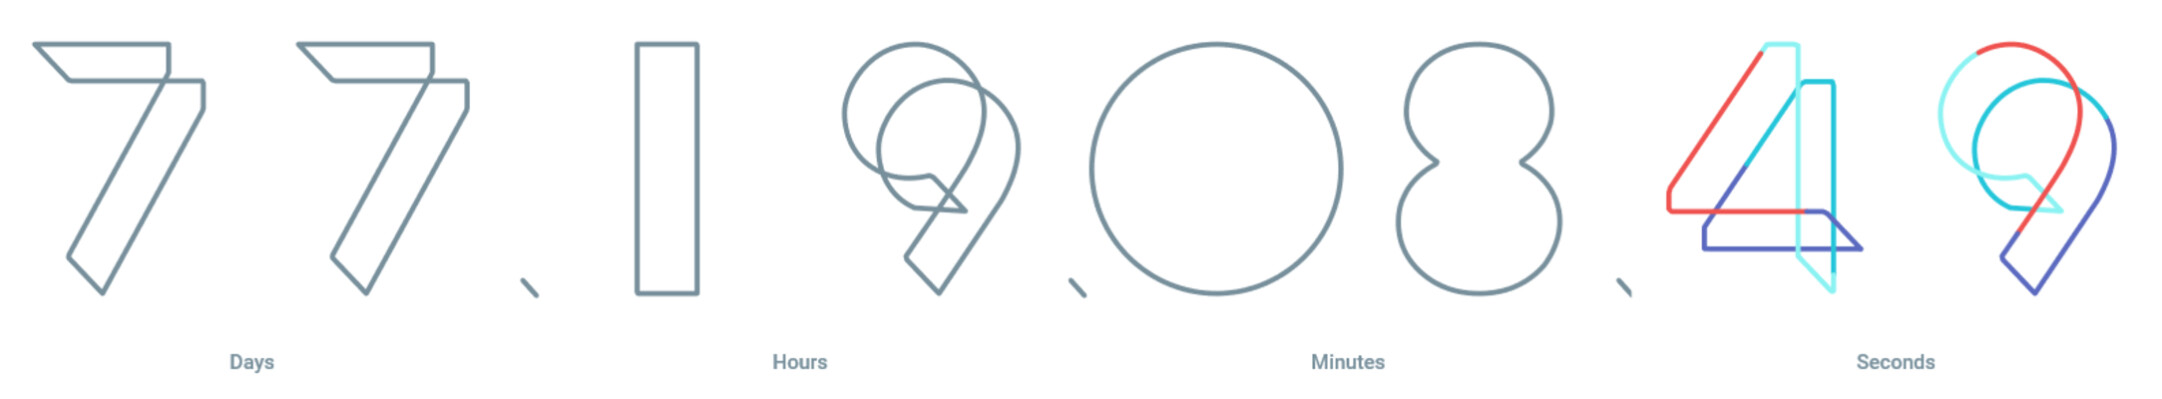 Google I/O website counts down the time until the May 18th start of this year's conference